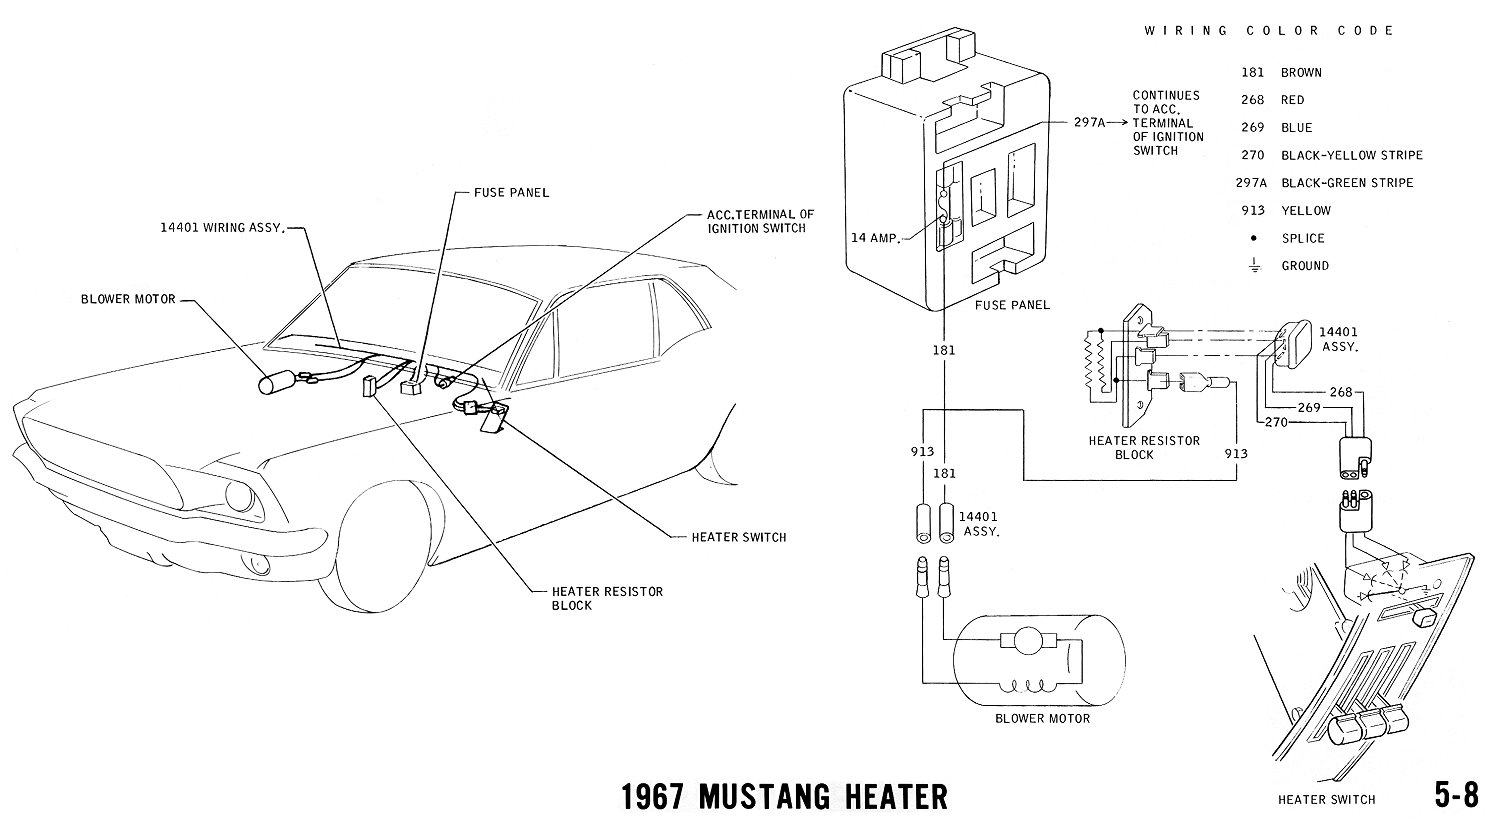 67 mustang engine diagram html imageresizertool com Fuel System Wiring Diagram for 1967 Mustang 2007 Mustang Wiring Harness Diagram